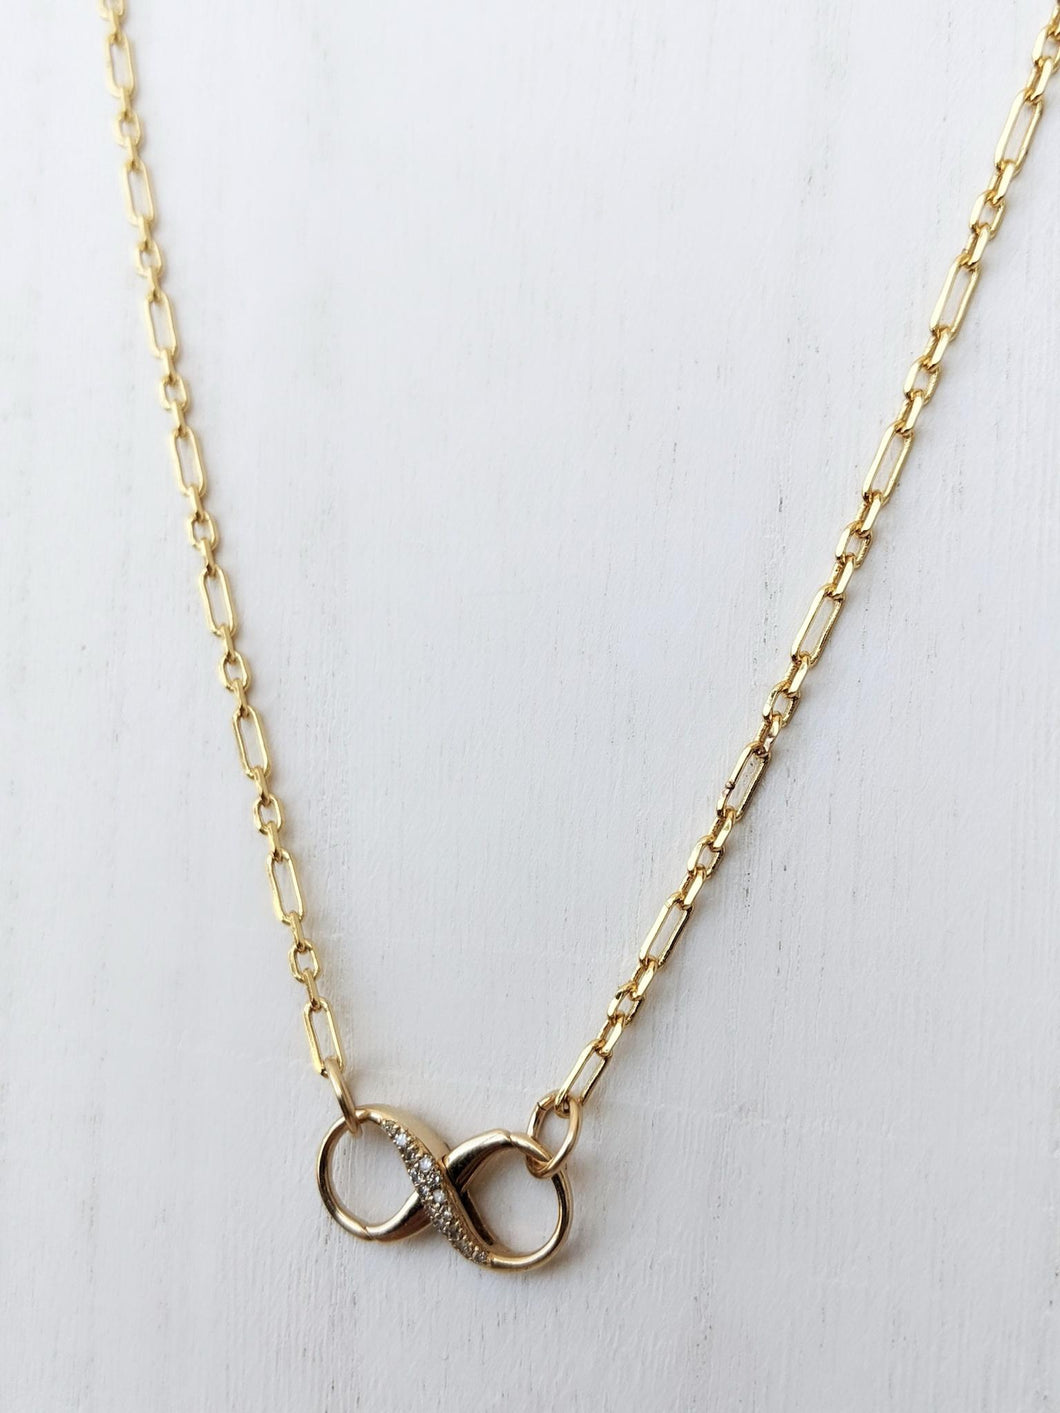 Open Loop Vintage Style Chain